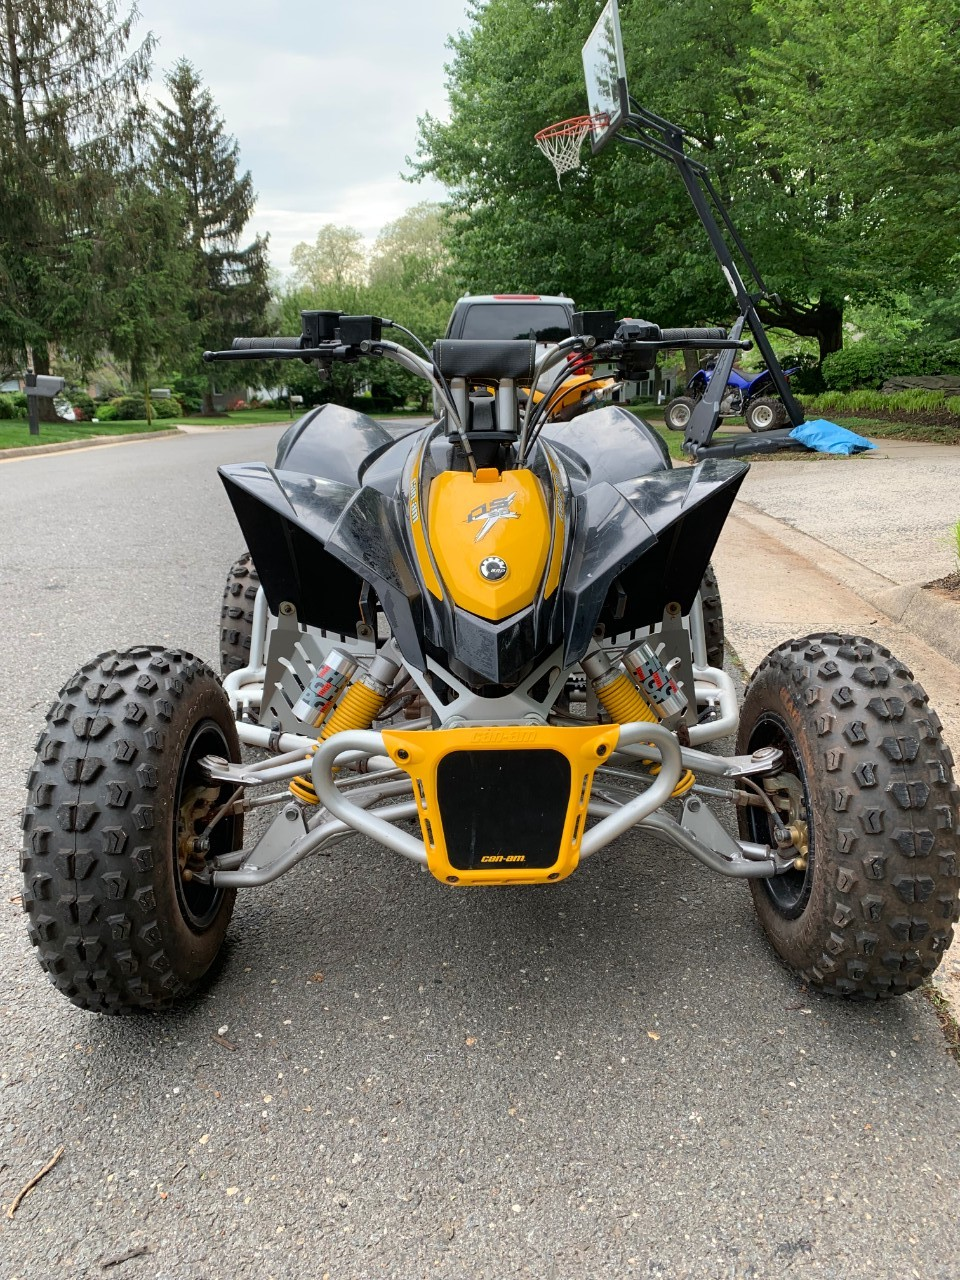 Used FOUR WHEELER All Terrain Vehicles For Sale - Cycle Trader